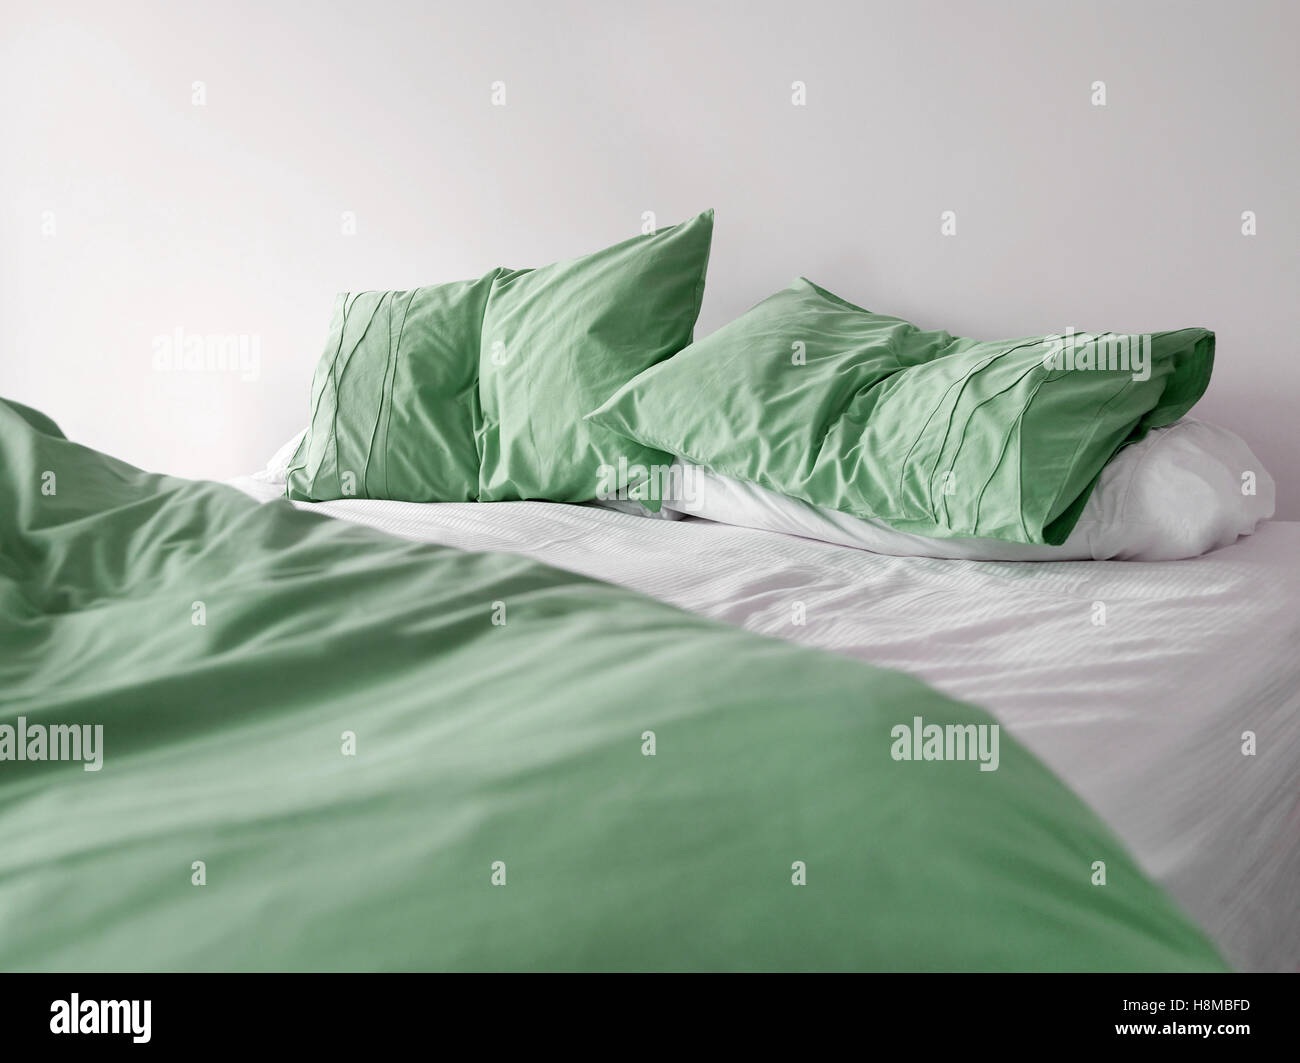 Green Bed - Stock Image